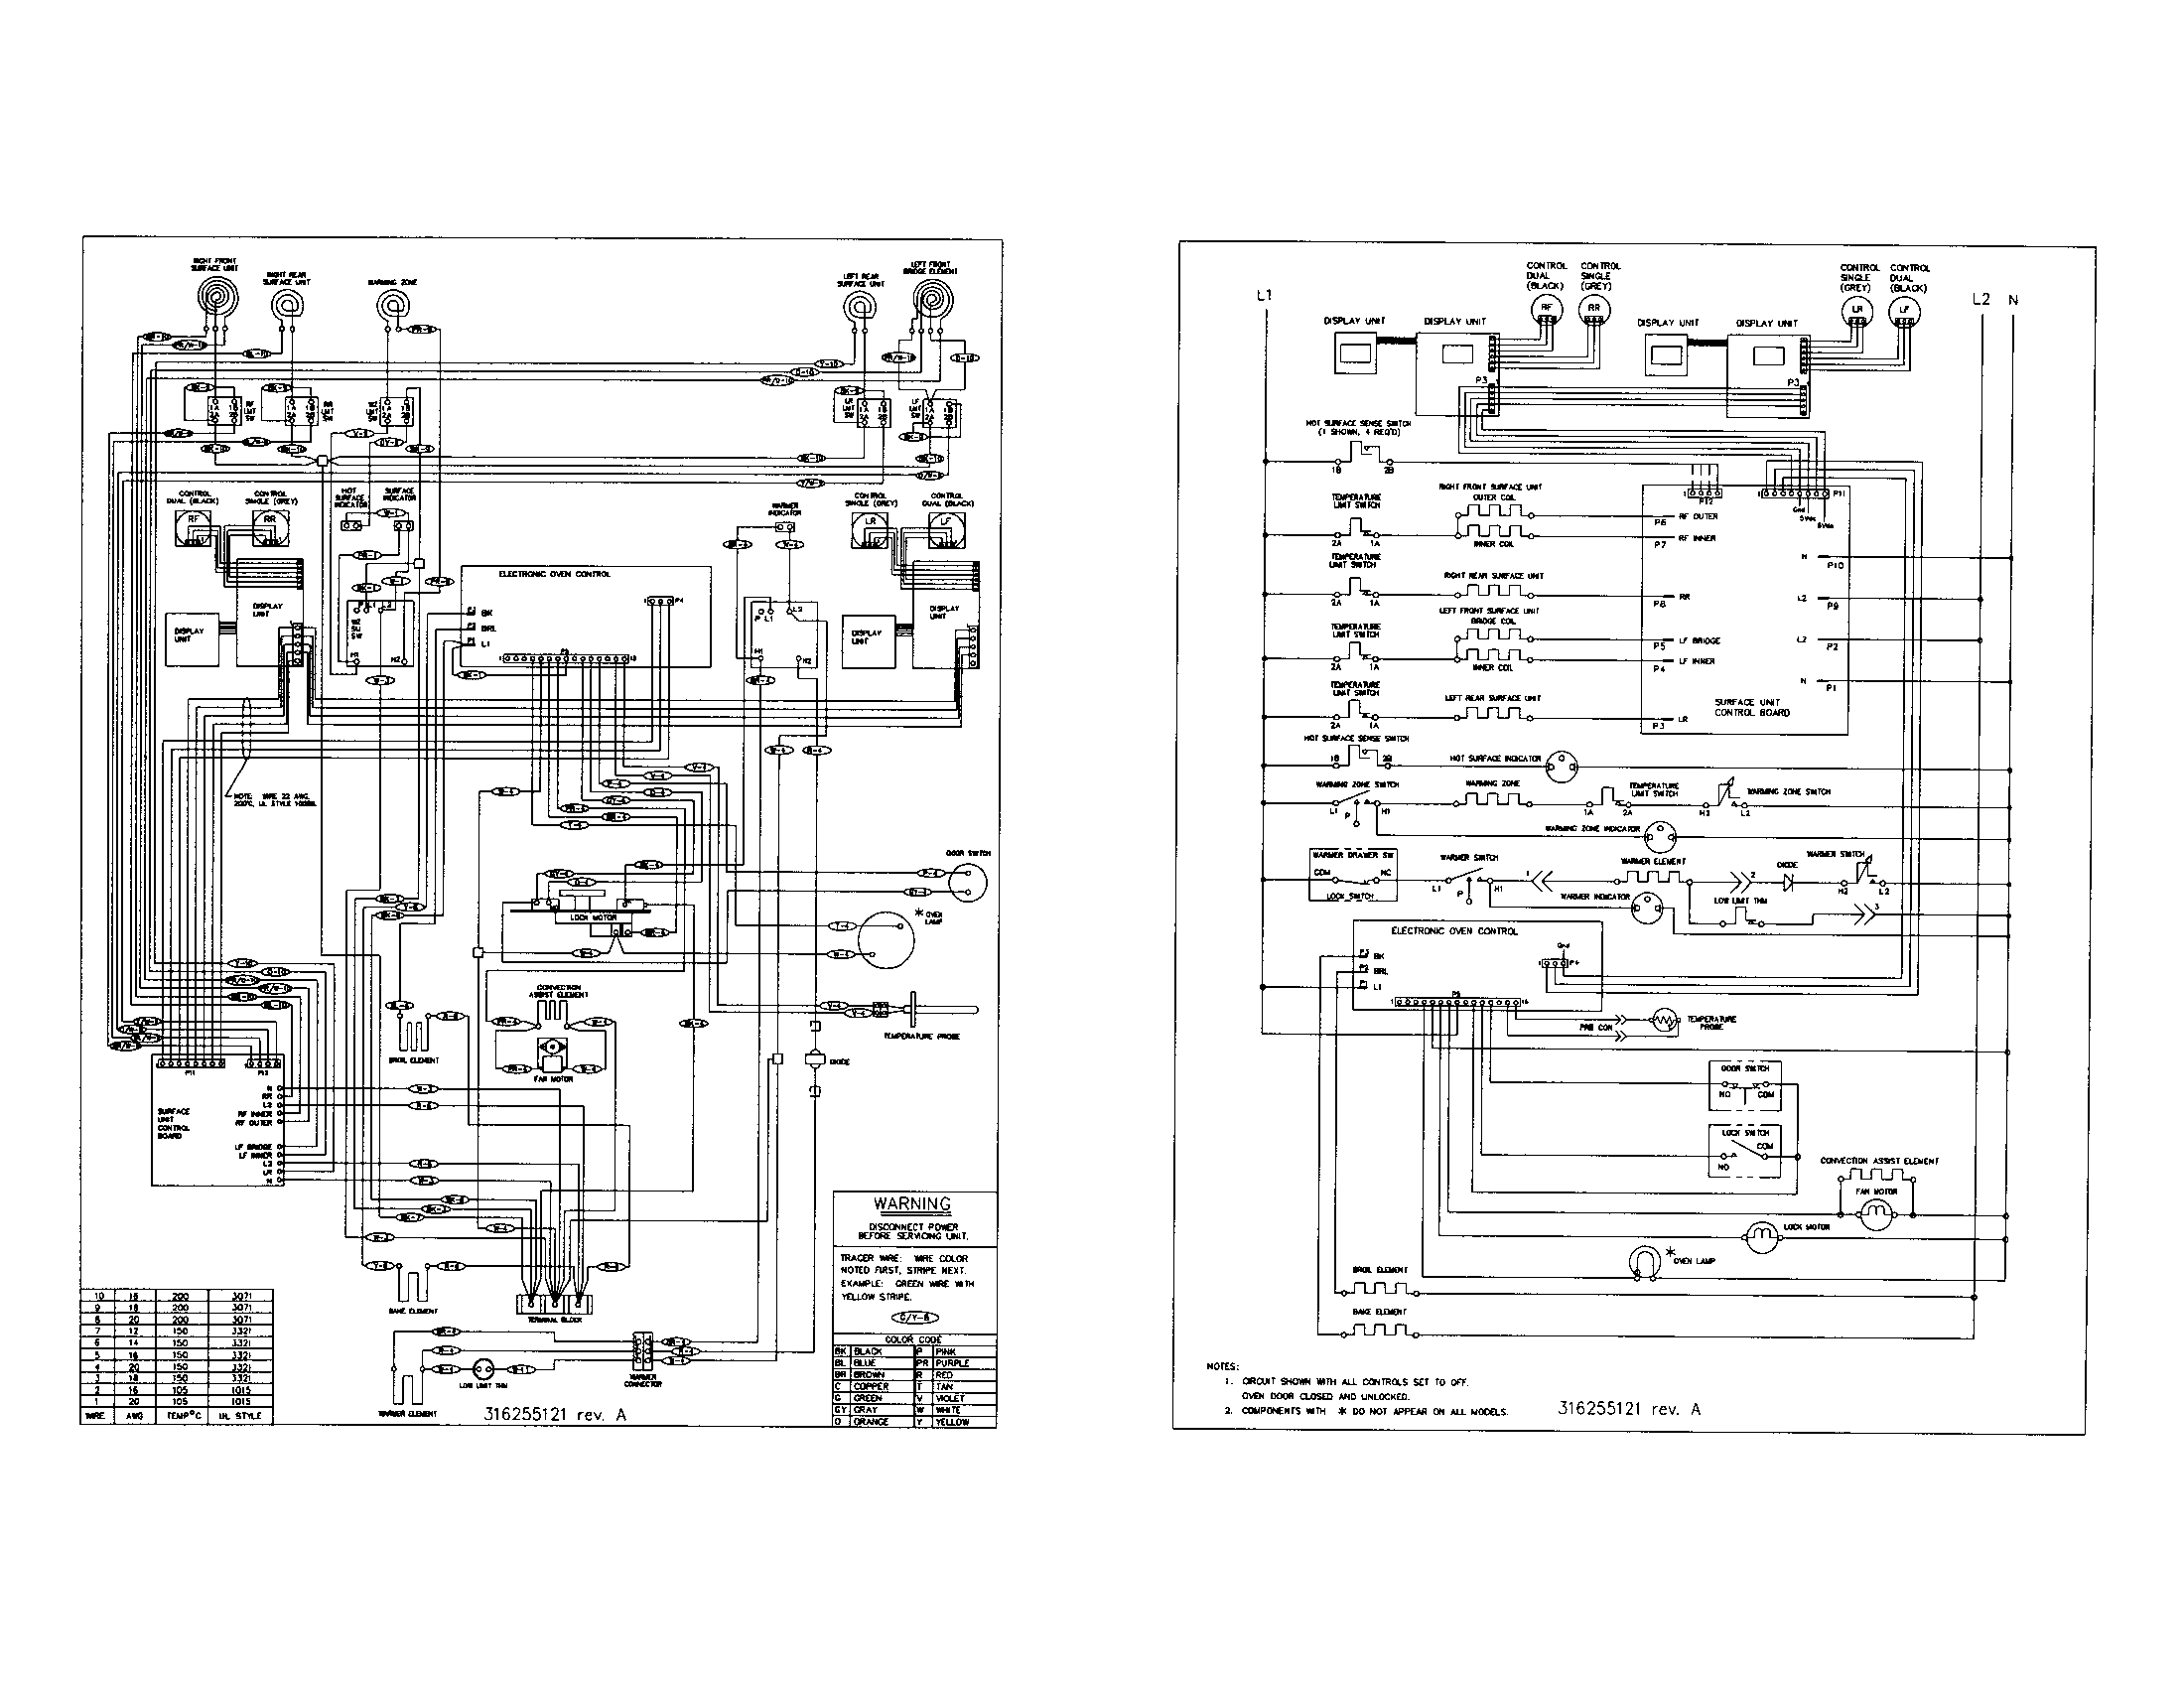 wiring diagram parts frigidaire dryer wiring diagram & frigidaire dryer wiring diagram wiring diagram for gler341as2 at crackthecode.co